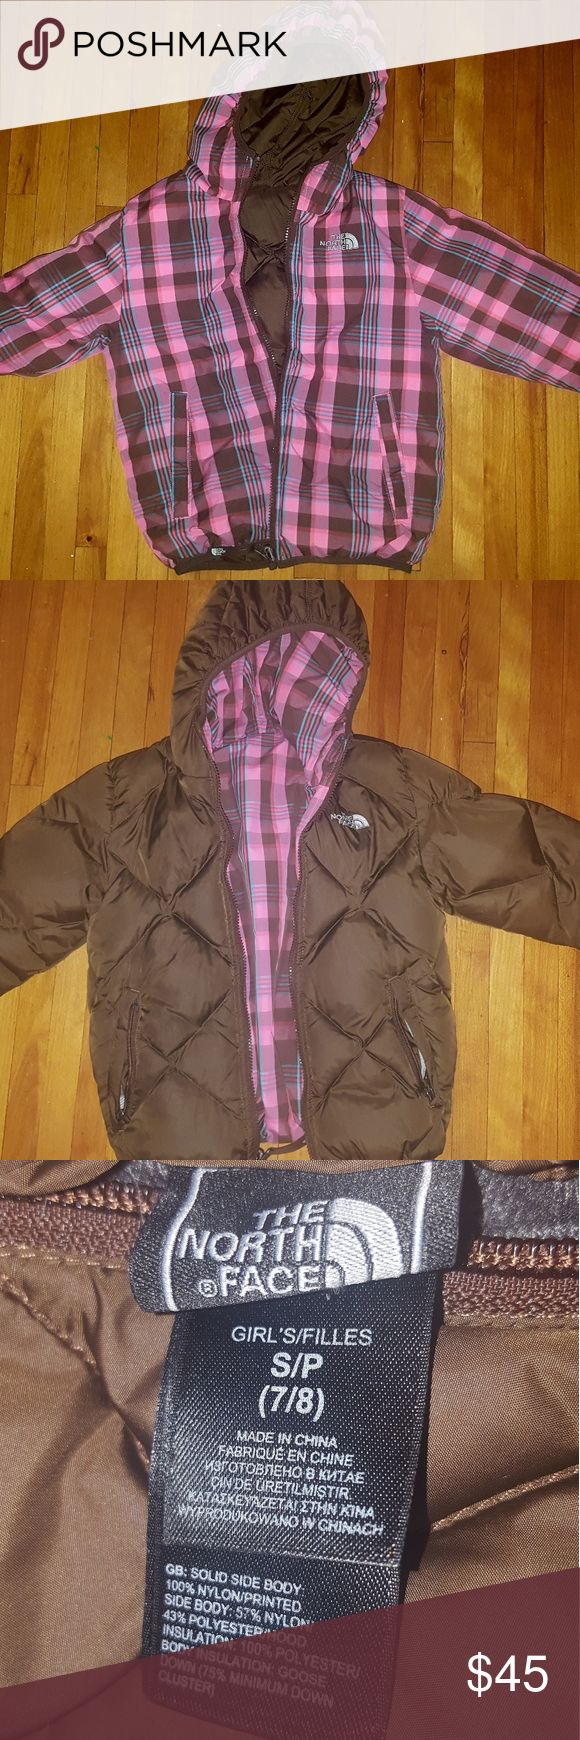 Girls North Face Jacket small 6/7 Reversible Brown Plaid- pink baby blue & brown Small 6/7 $45 OBO The North Face Jackets & Coats Puffers